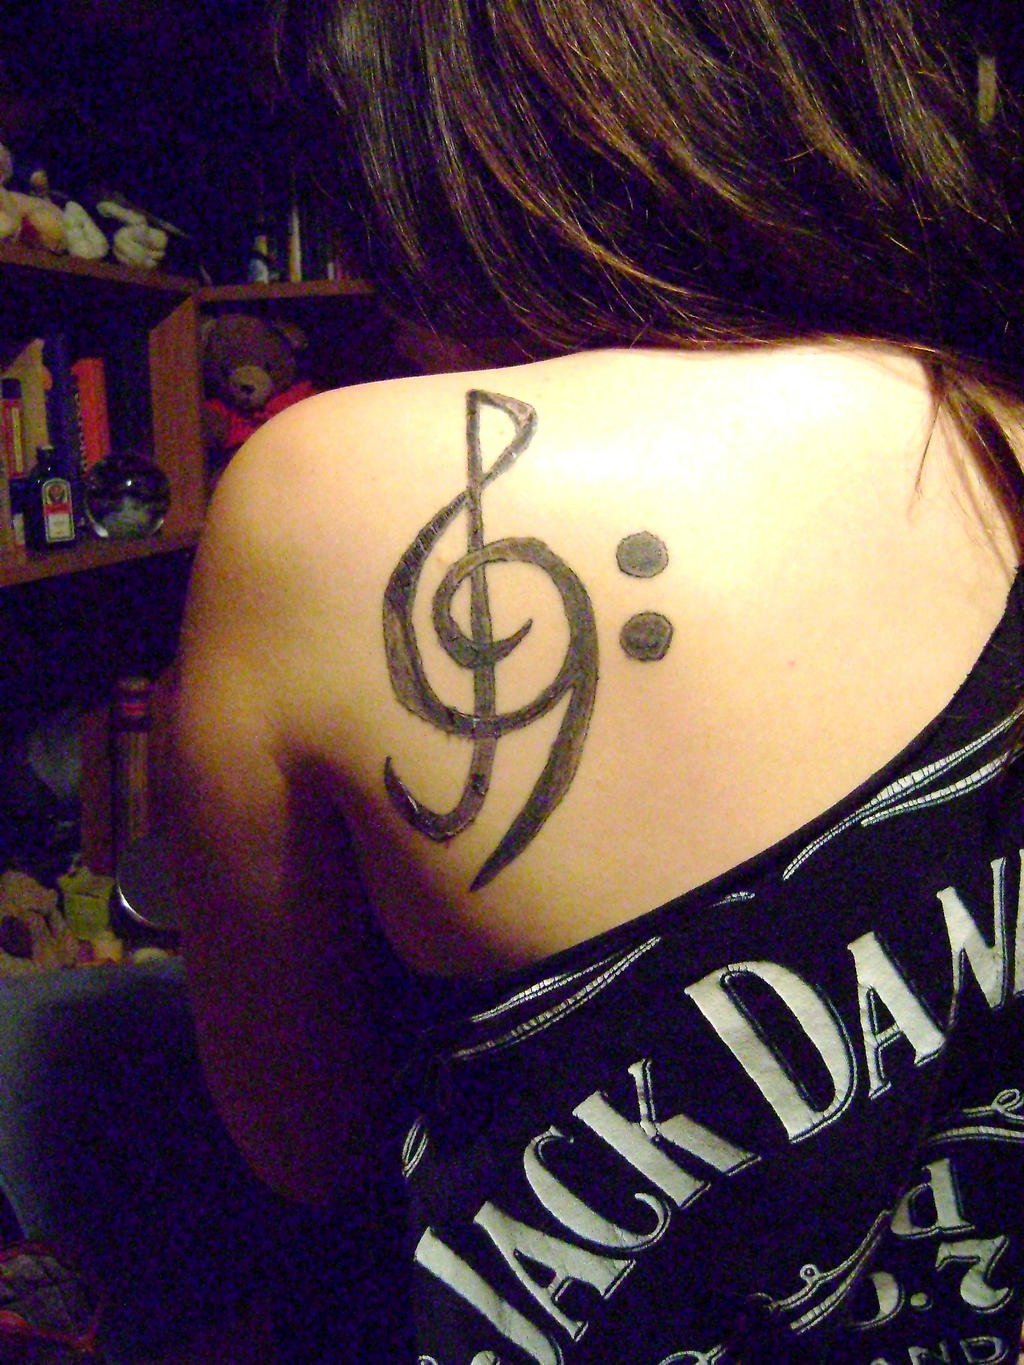 treble bass clef tattoo by worthgoingtohellfor on deviantart. Black Bedroom Furniture Sets. Home Design Ideas